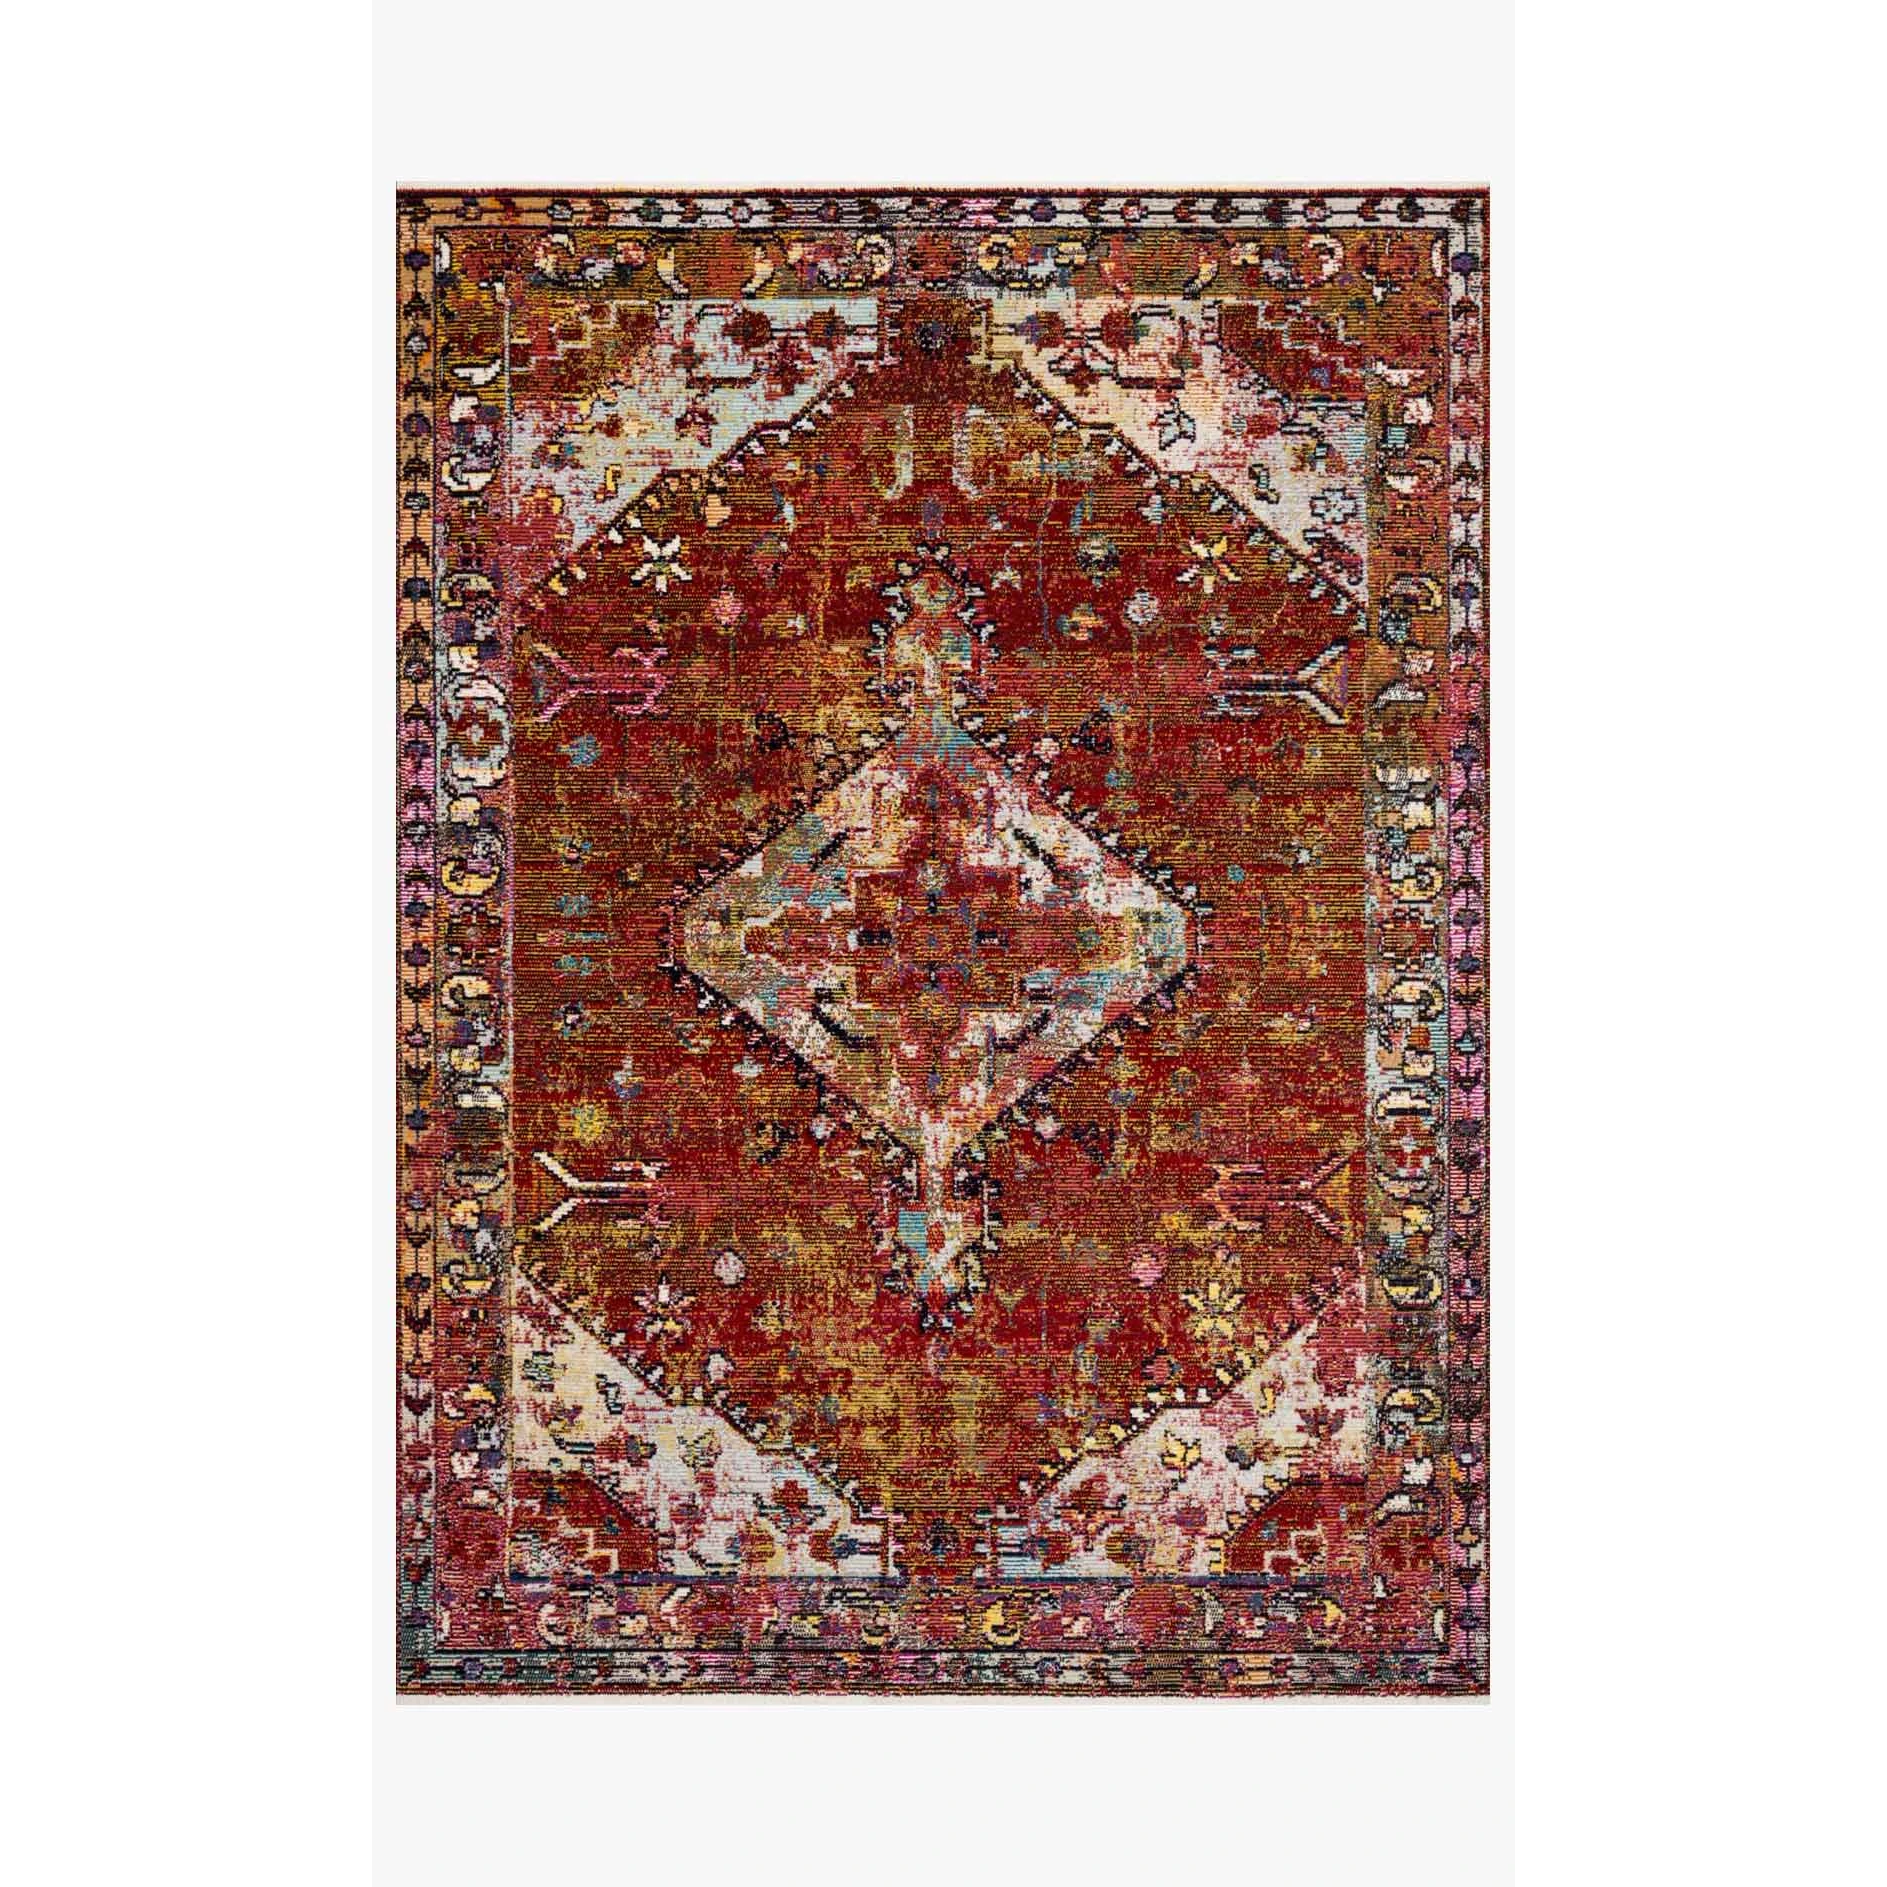 Justina Blakeney Rugs - Silvia - SIL-06 Red/Multi-Loloi Rugs-Blue Hand Home